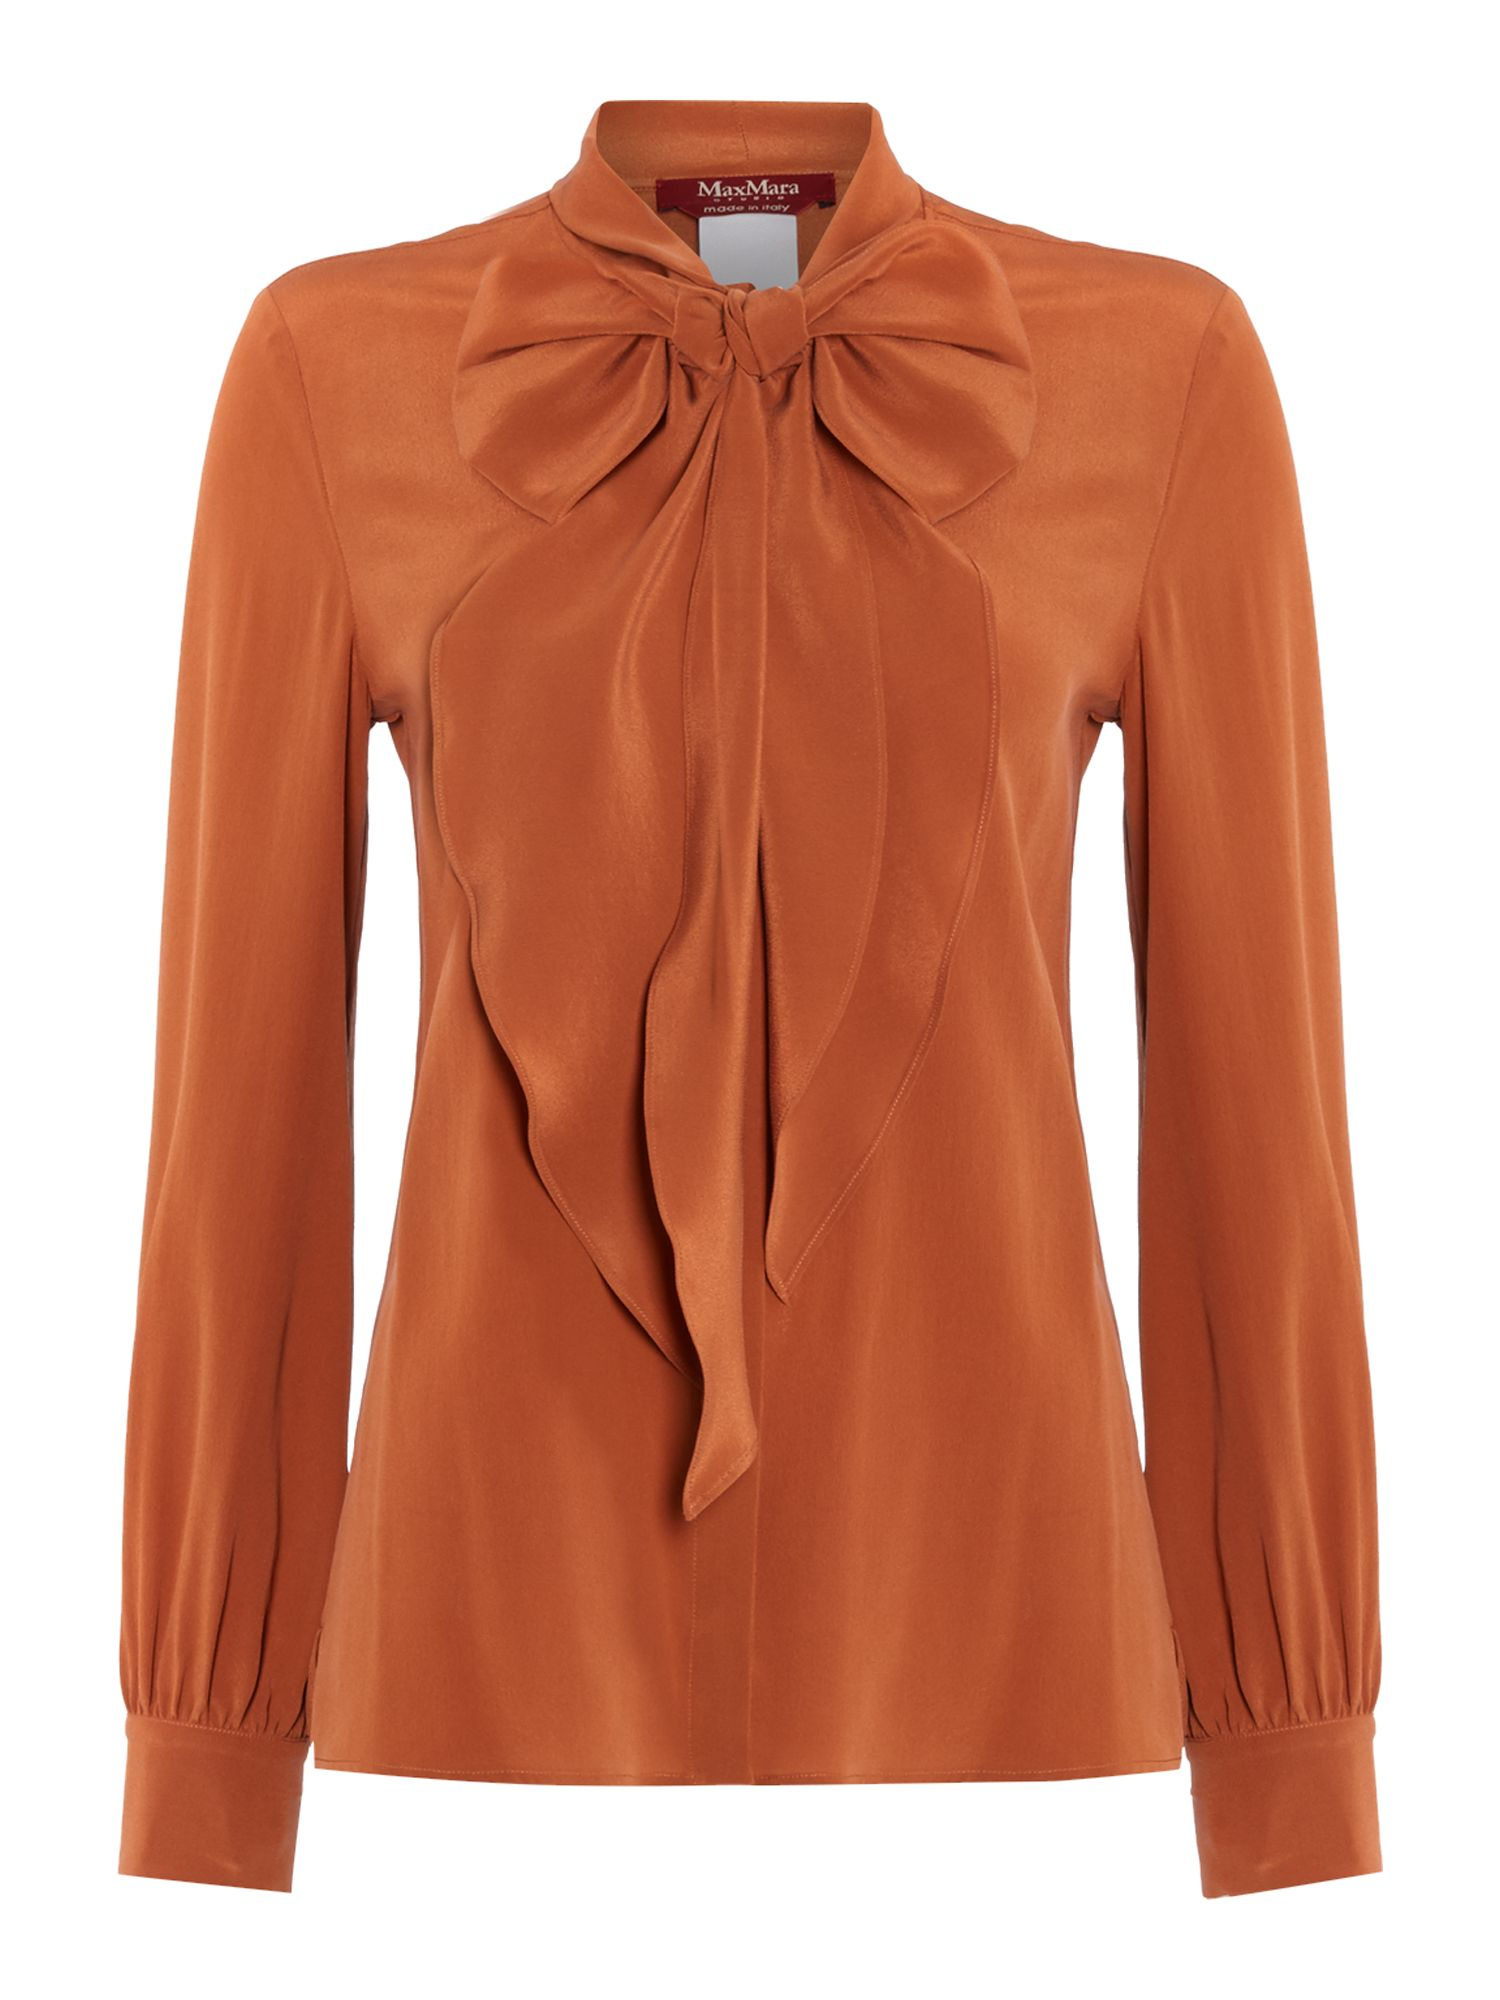 1920sStyleBlouses Max Mara Maldive long sleeve silk pussy bow blouse Terracotta £200.00 AT vintagedancer.com